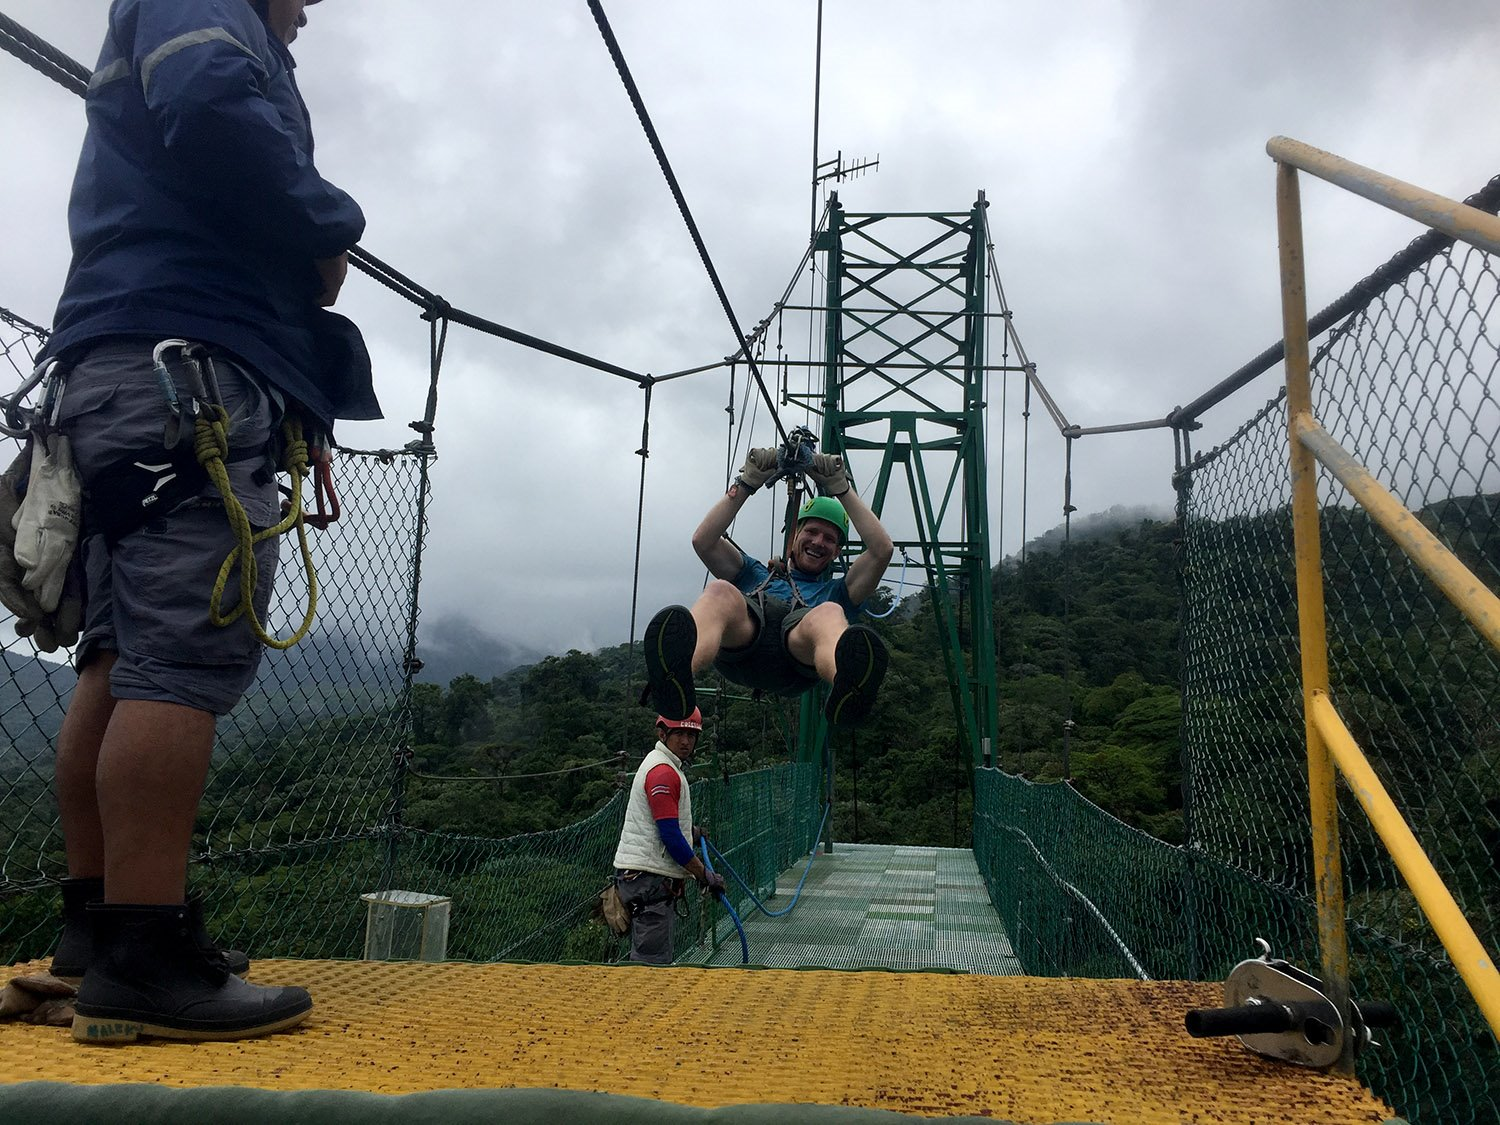 Things to do in Arenal Costa Rica Sky Adventures Zipline